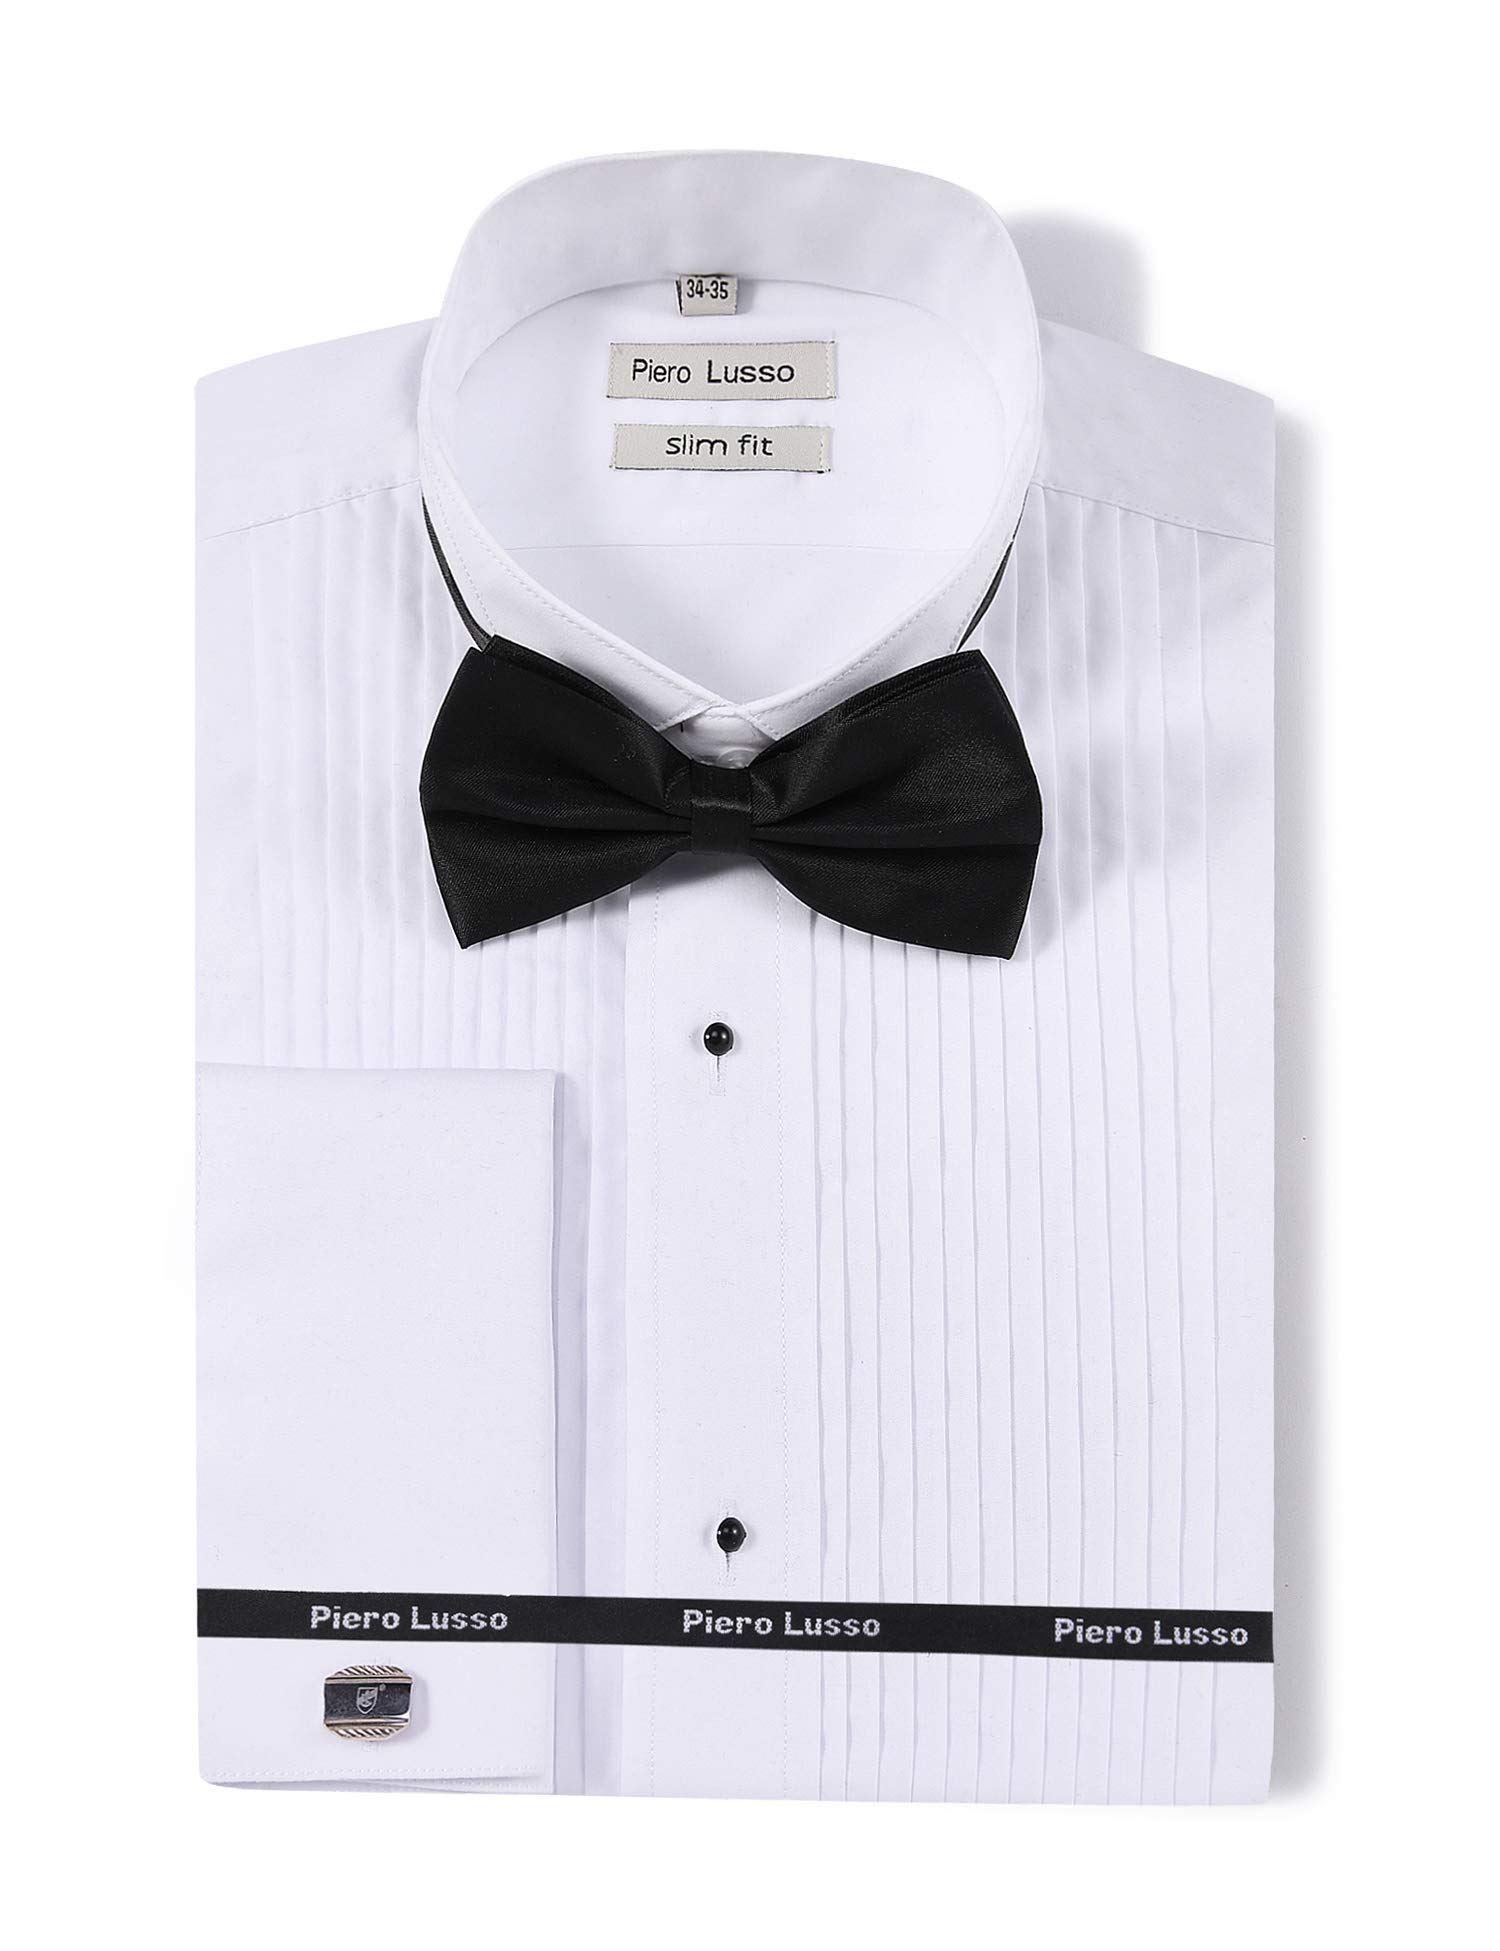 Piero Lusso Men's Wingtip Collar Tuxedo Dress Shirt with French Cuffs and Bow Tie White by Piero Lusso